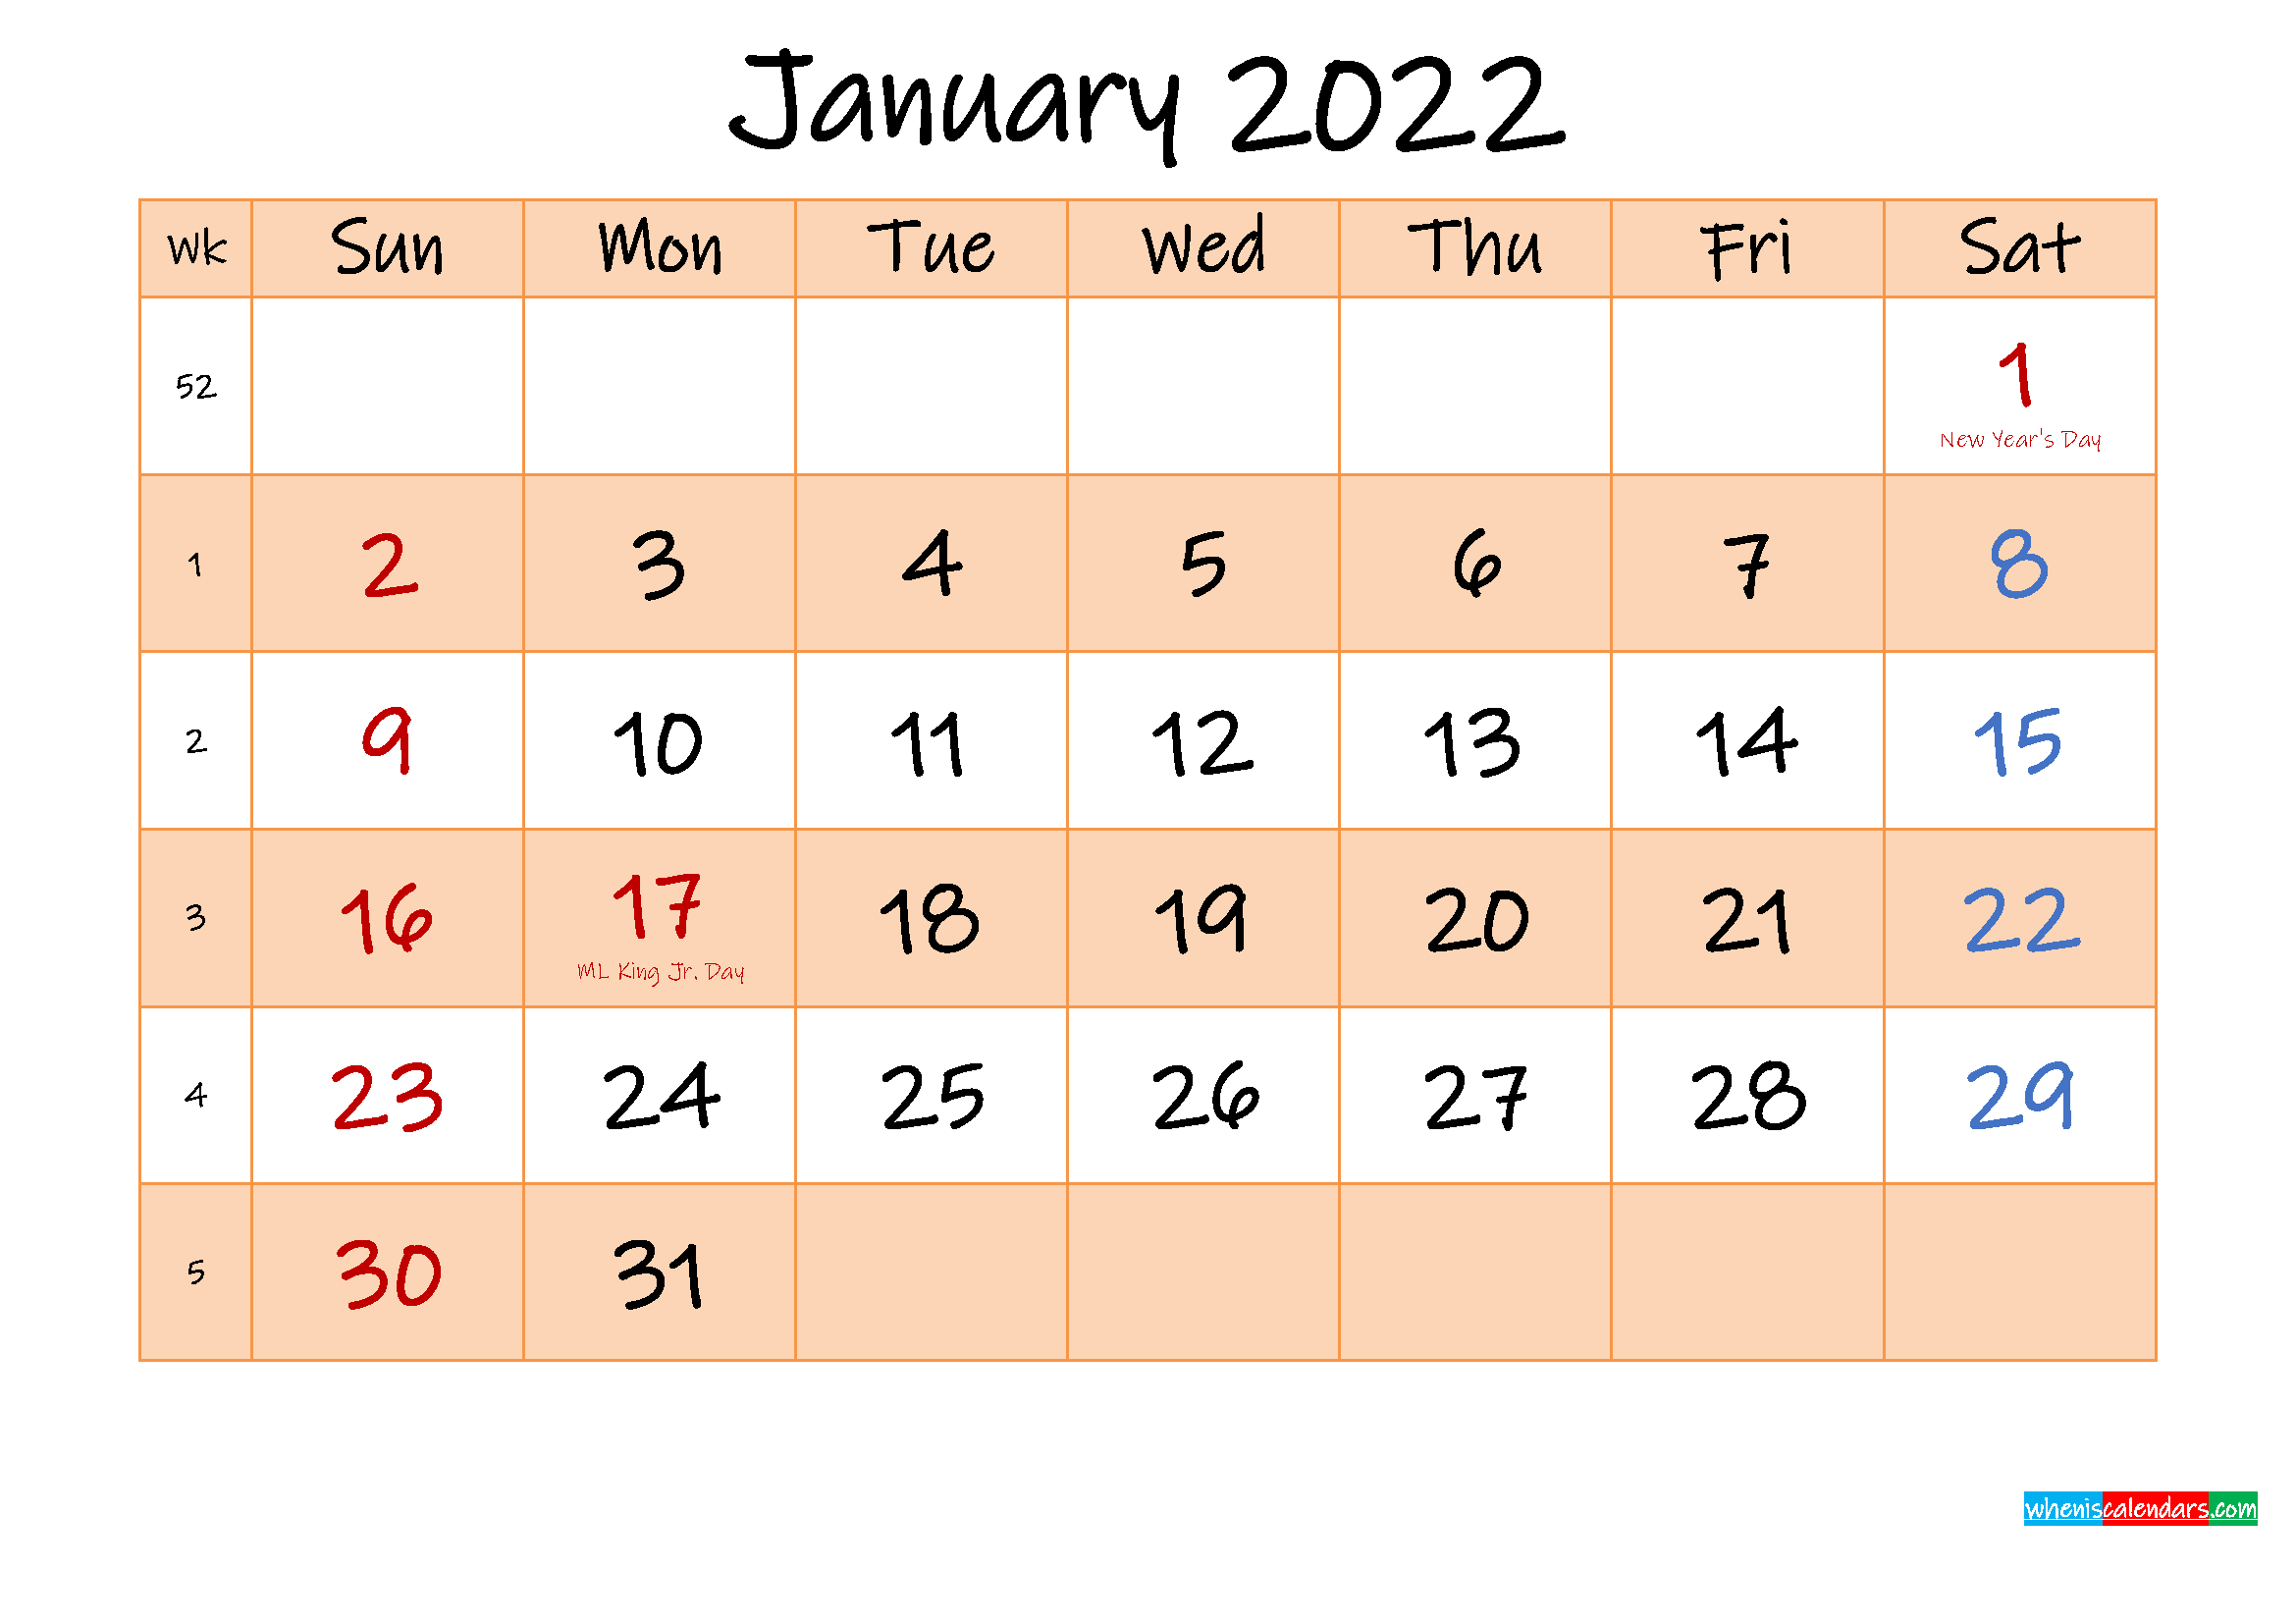 Editable January 2022 Calendar - Template No.ink22M481 with 2022 Day To Day Calendars For Men